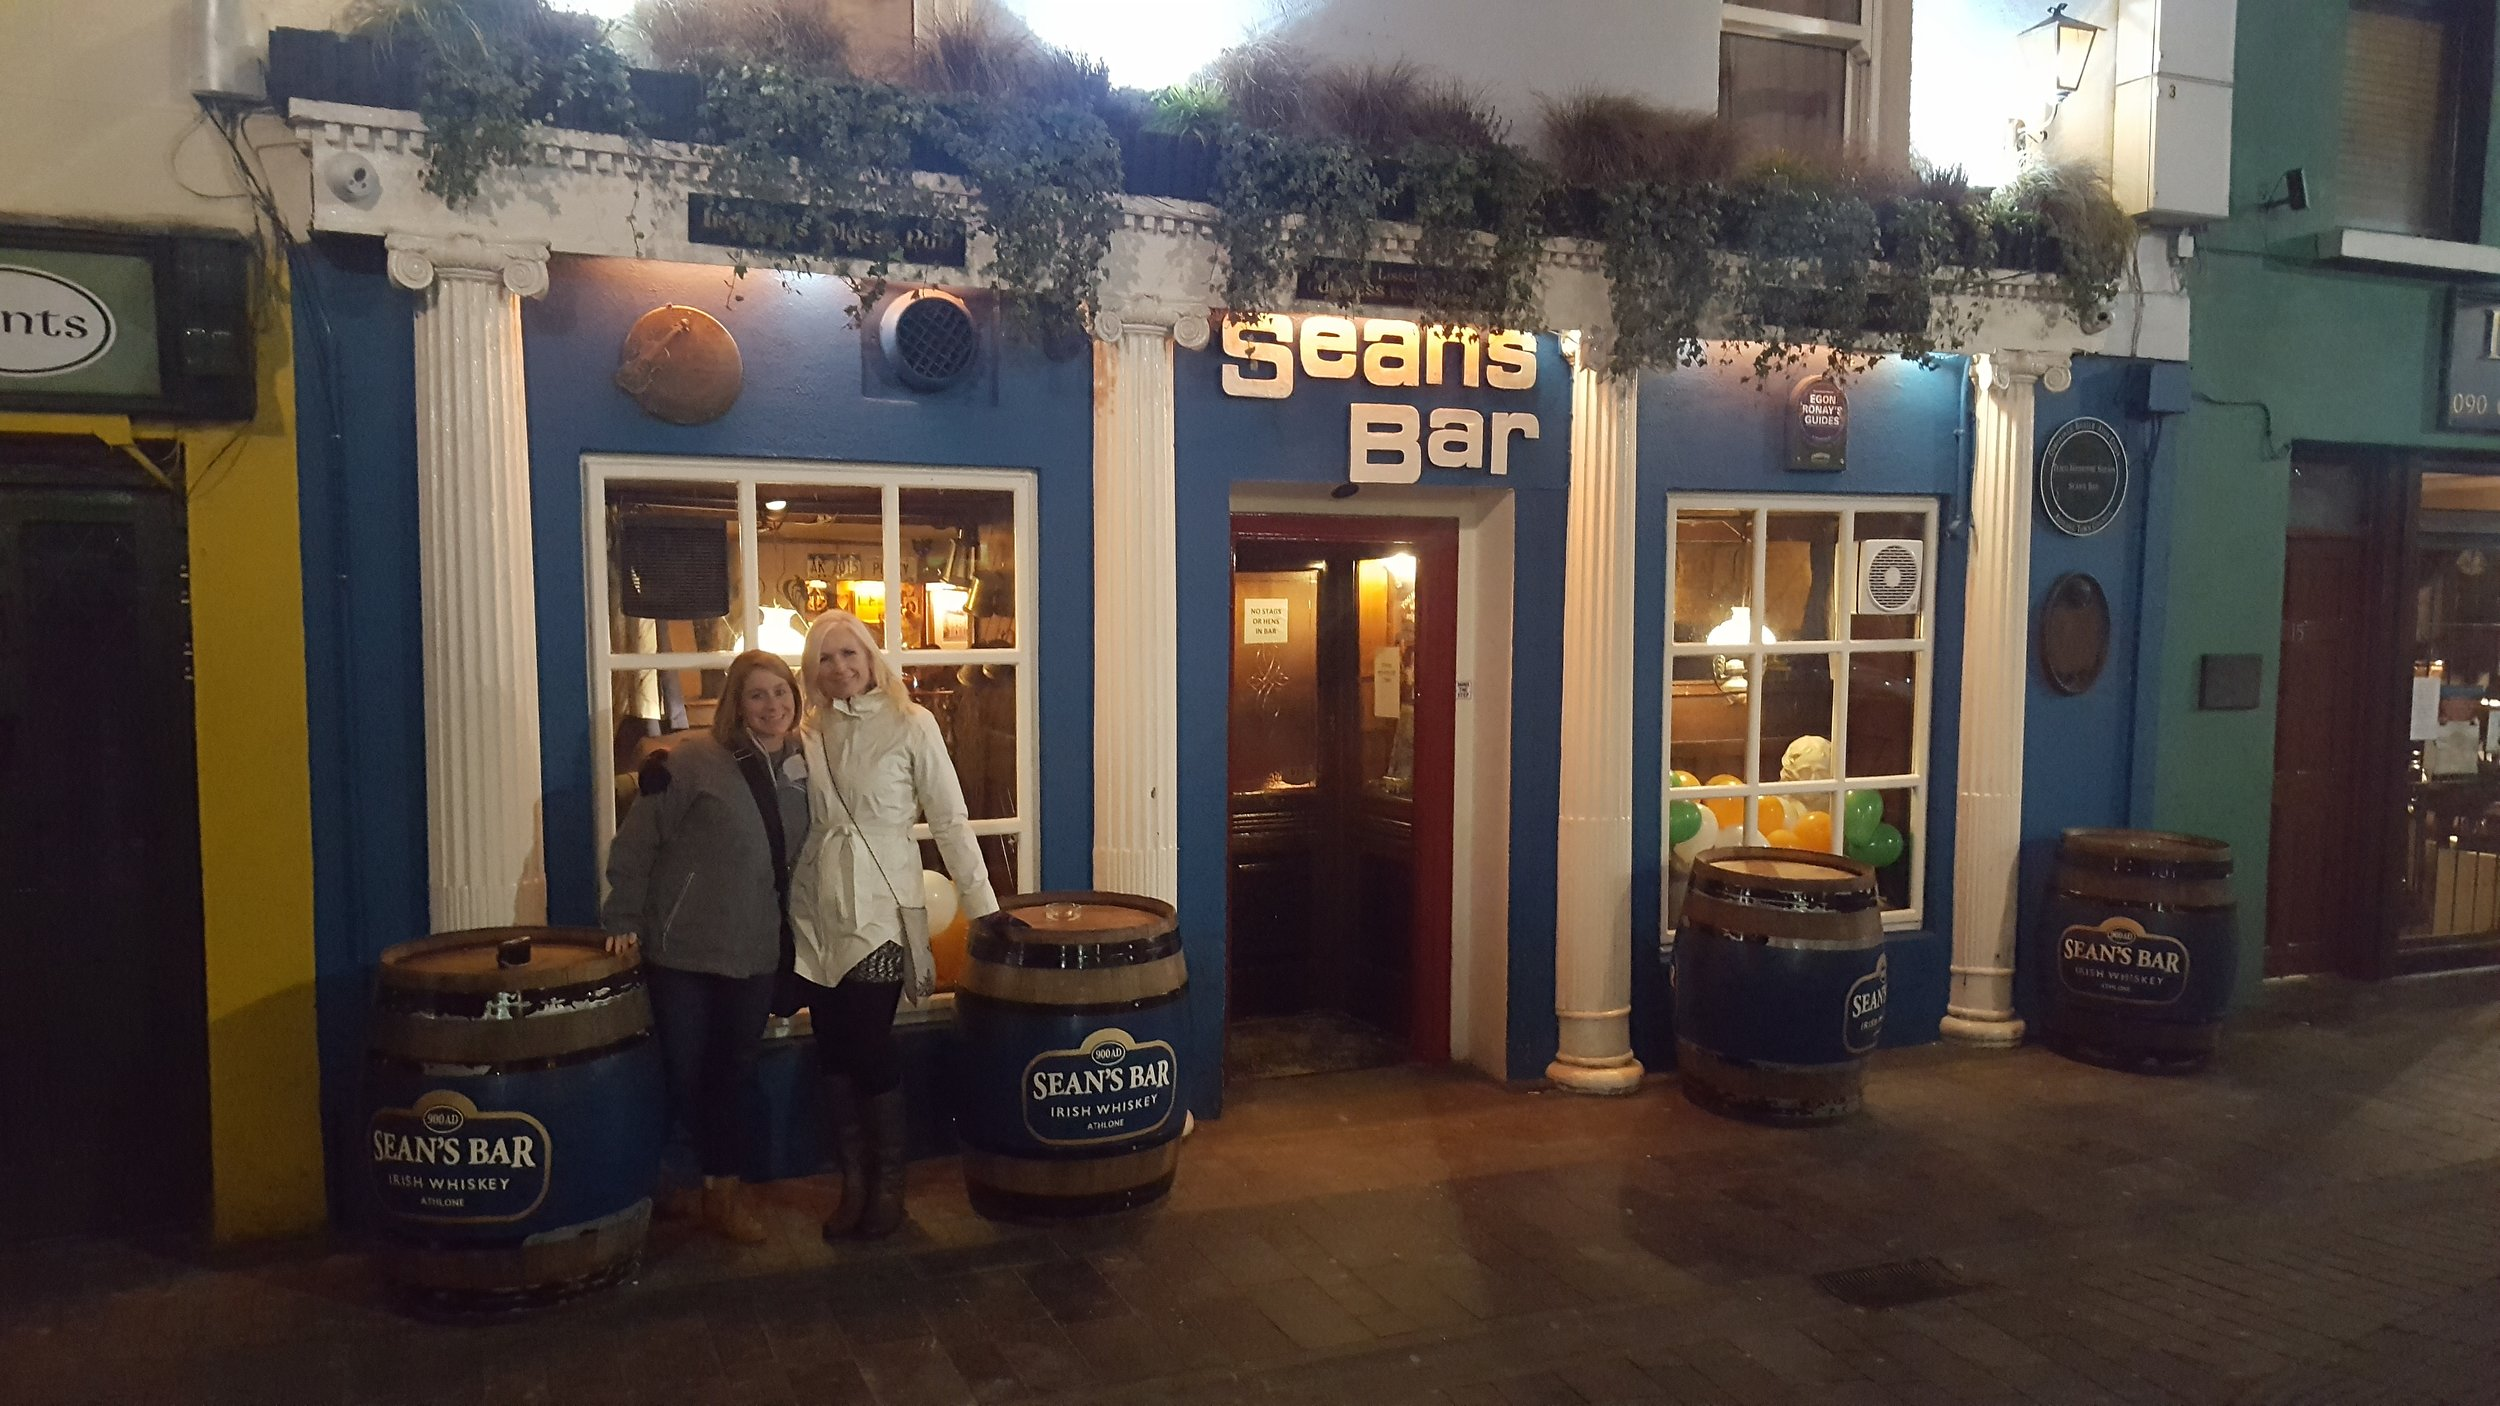 Murphy and me at Sean's Bar, Athlone